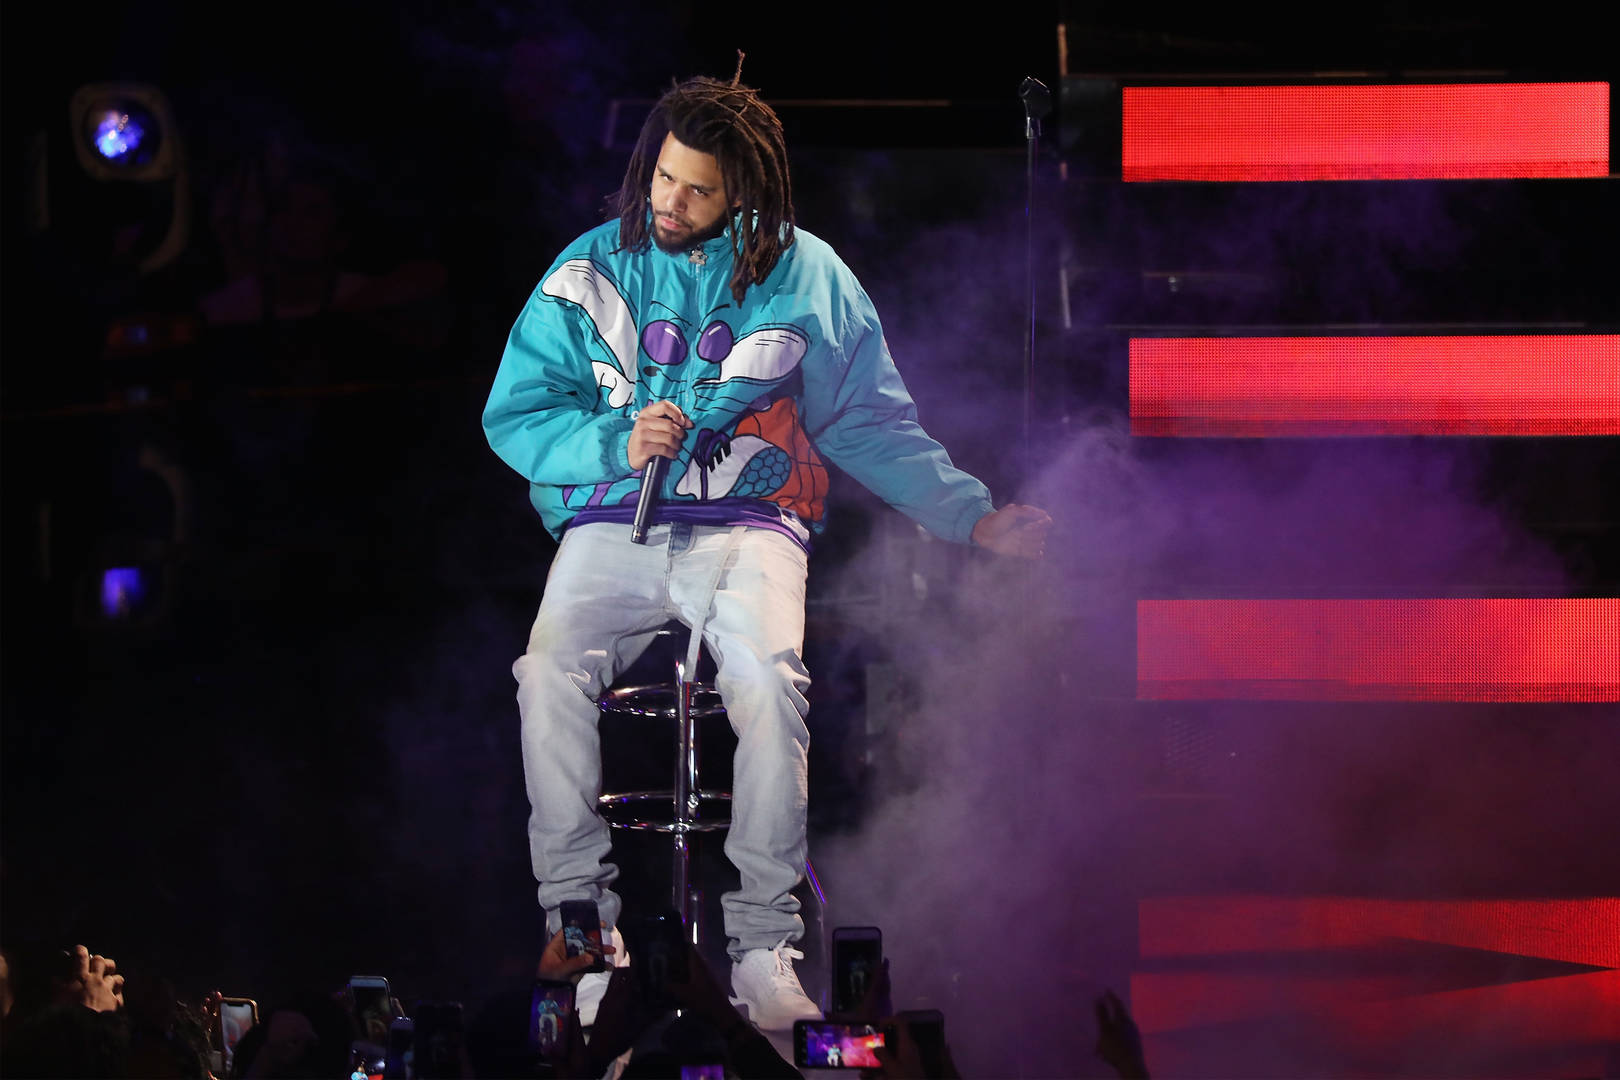 J.I.D. Brings Out J. Cole, Joey Bada$$, A$AP Ferg & More In NYC